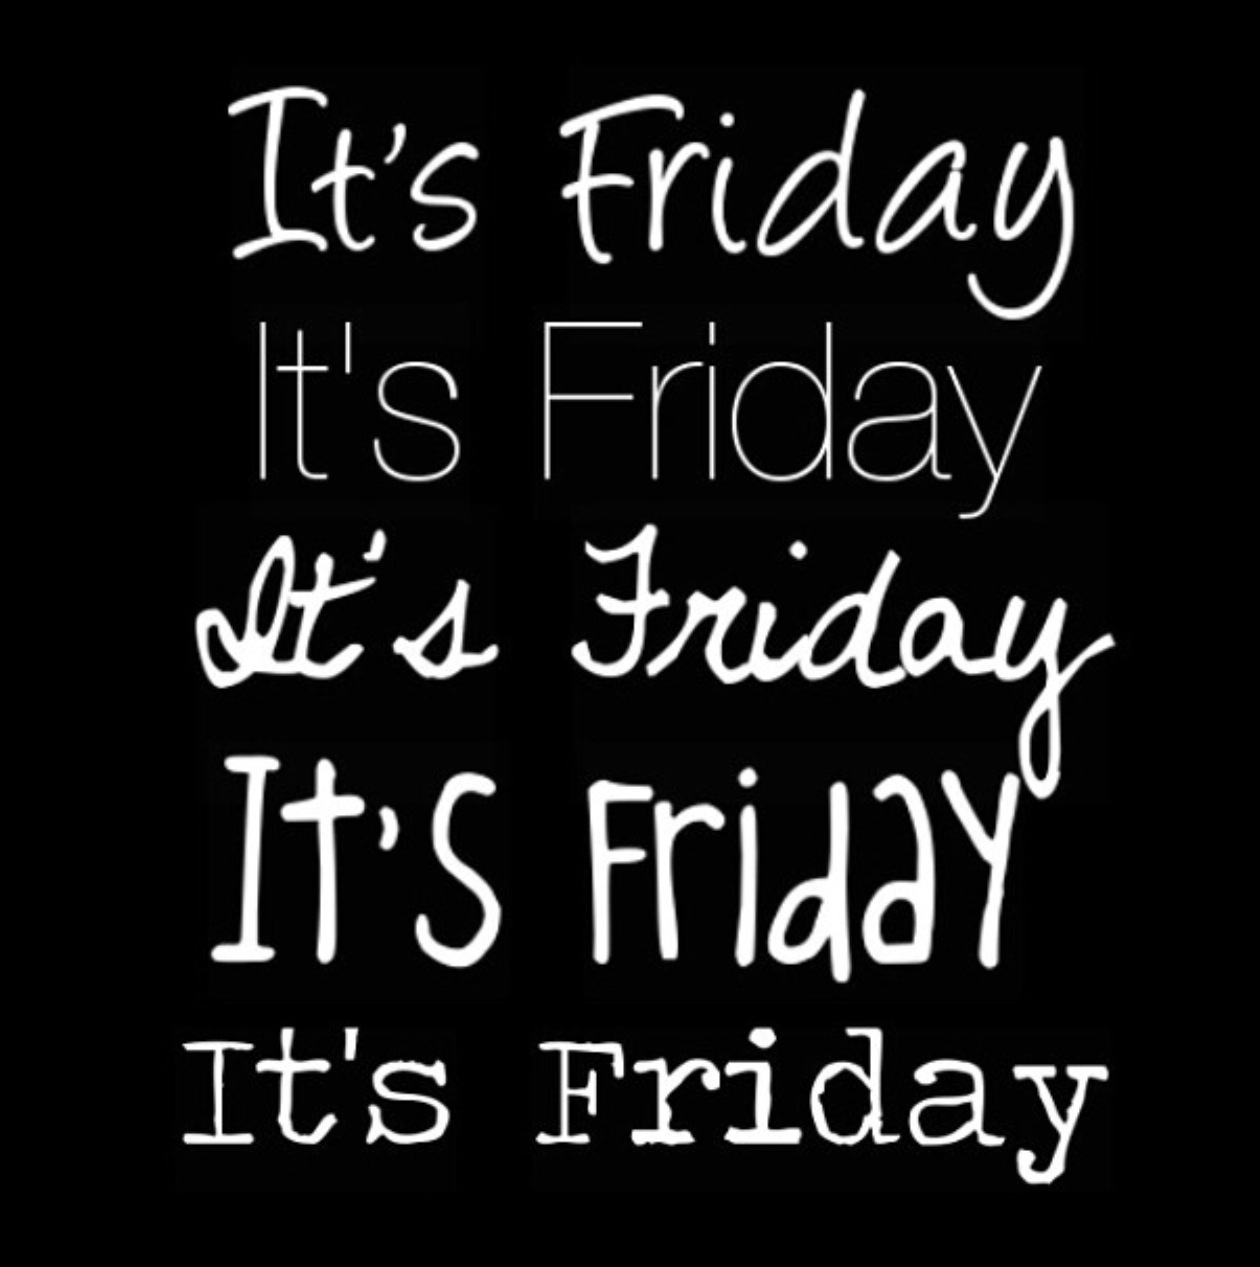 Funny Friday Quotes And Sayings: Friday Funday Quotes. QuotesGram